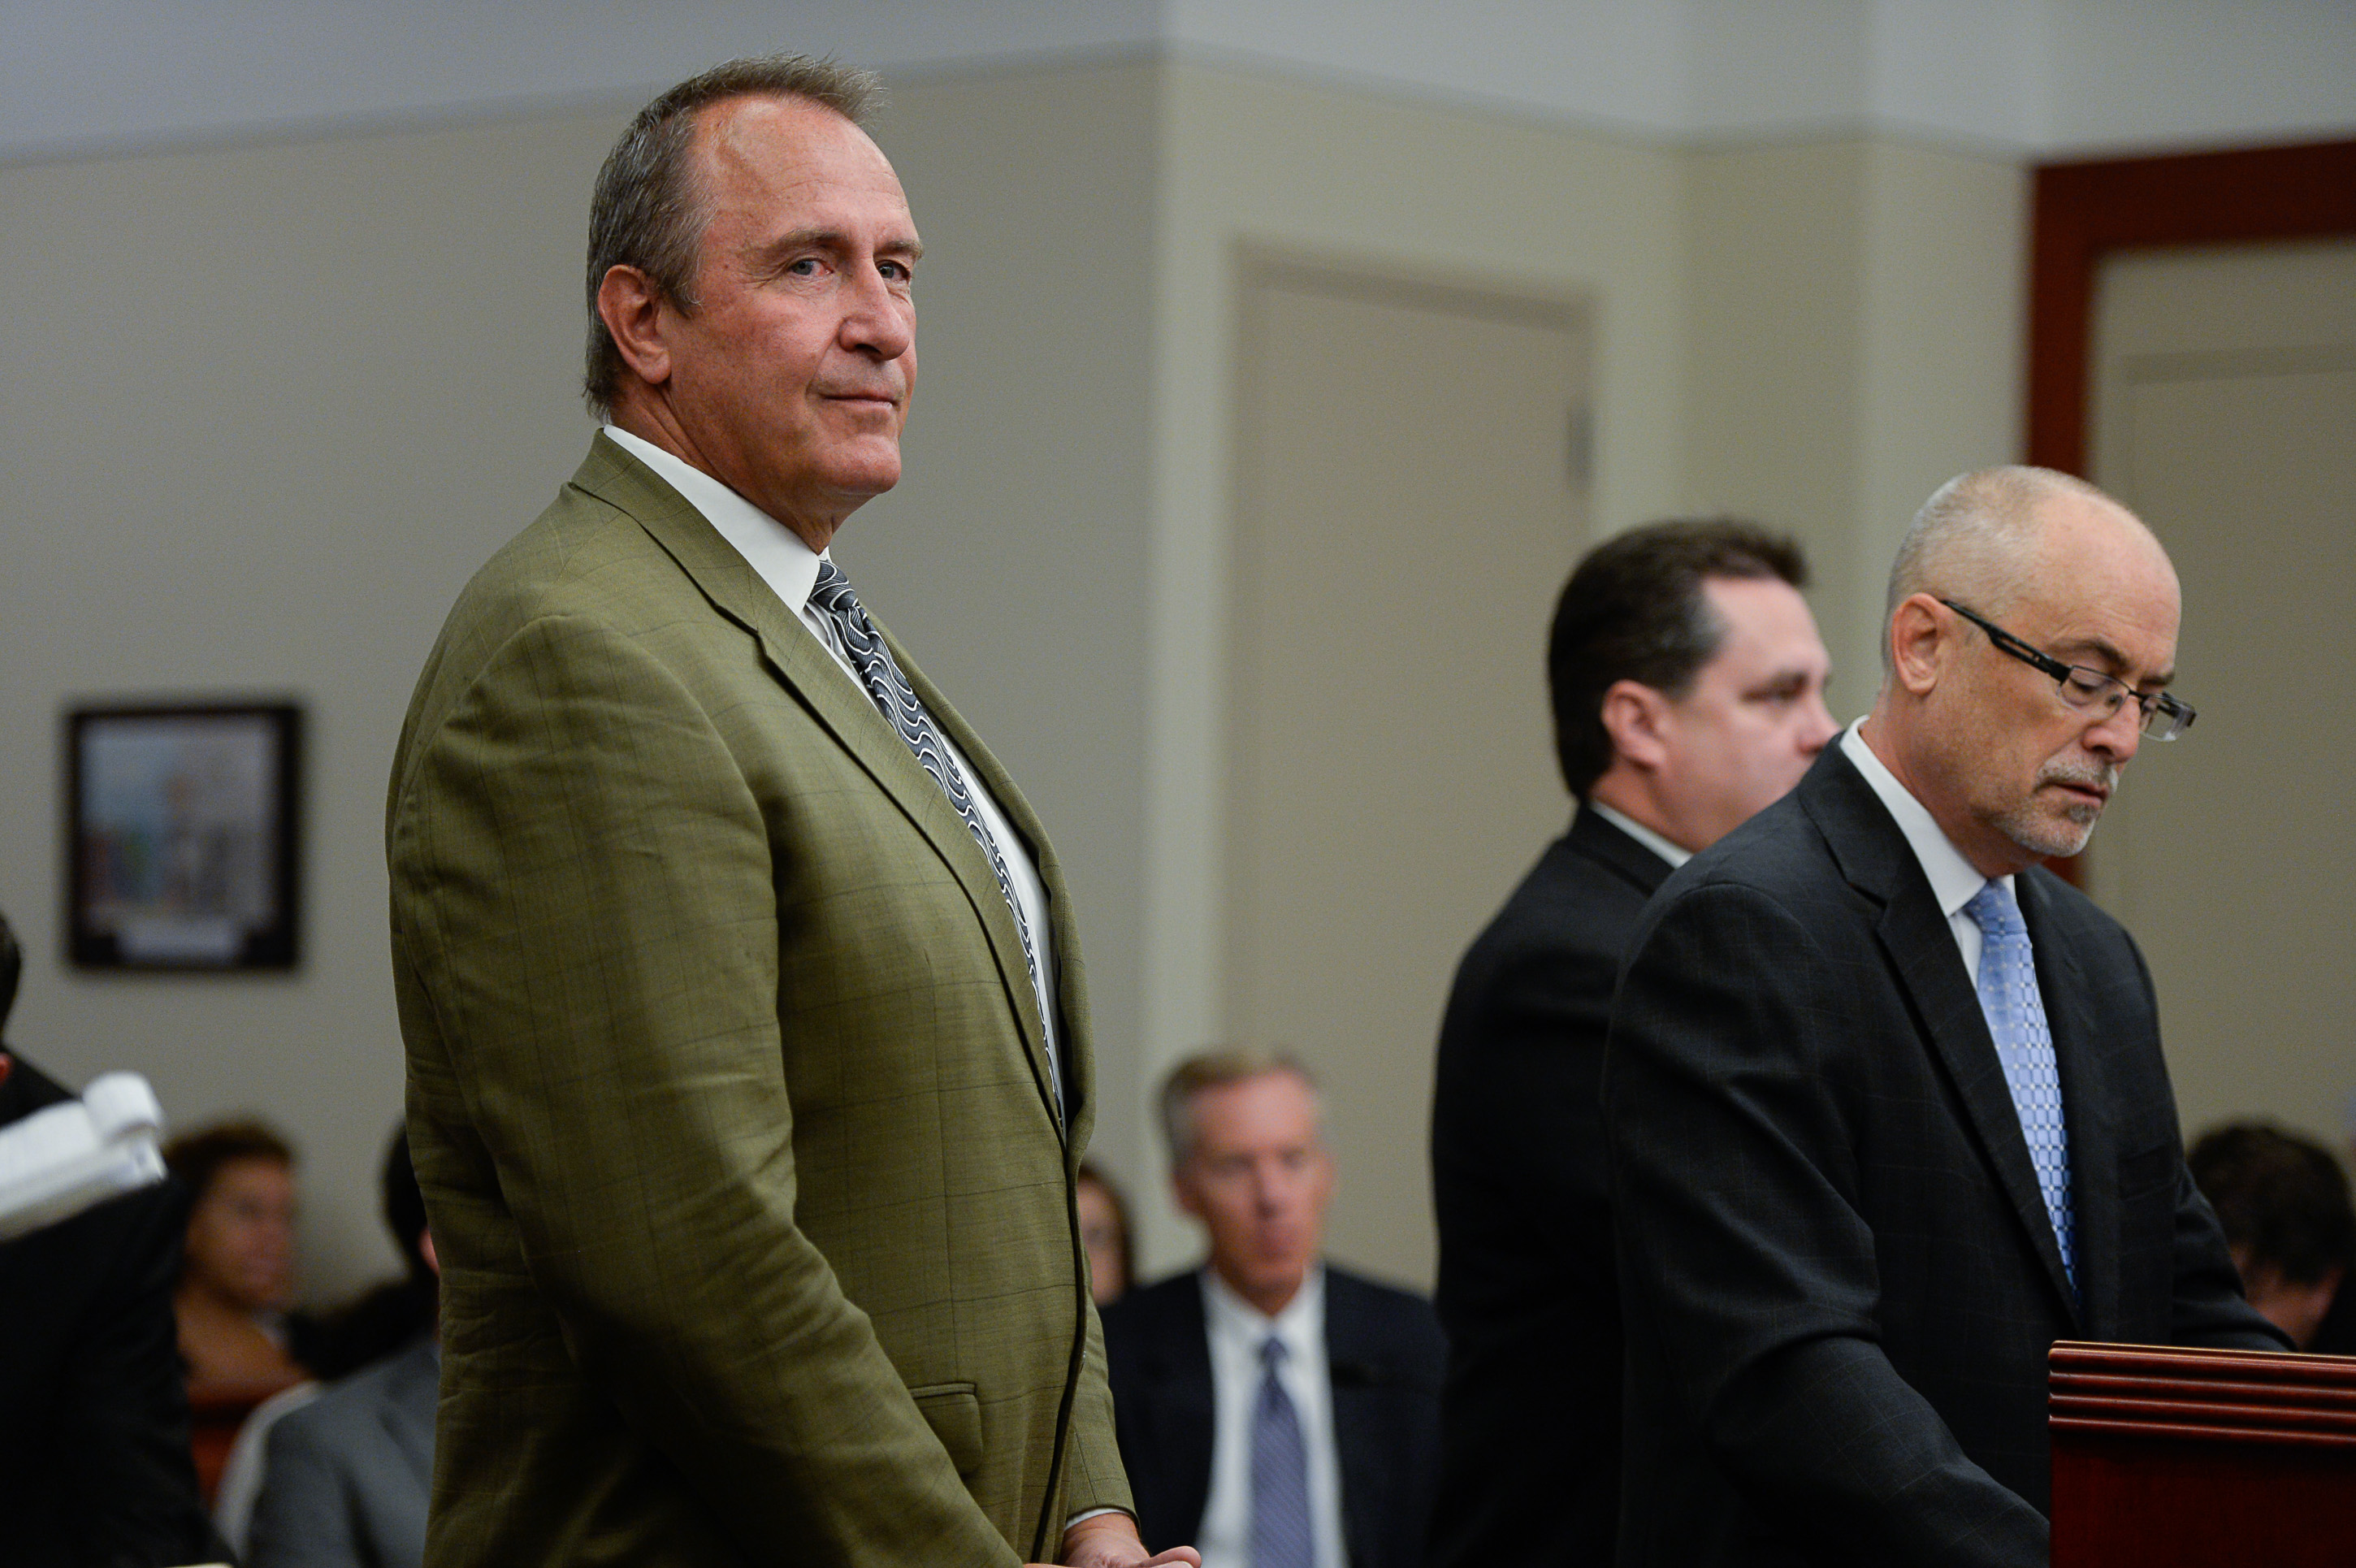 Ruling on dismissing Shurtleff charges might not come until August